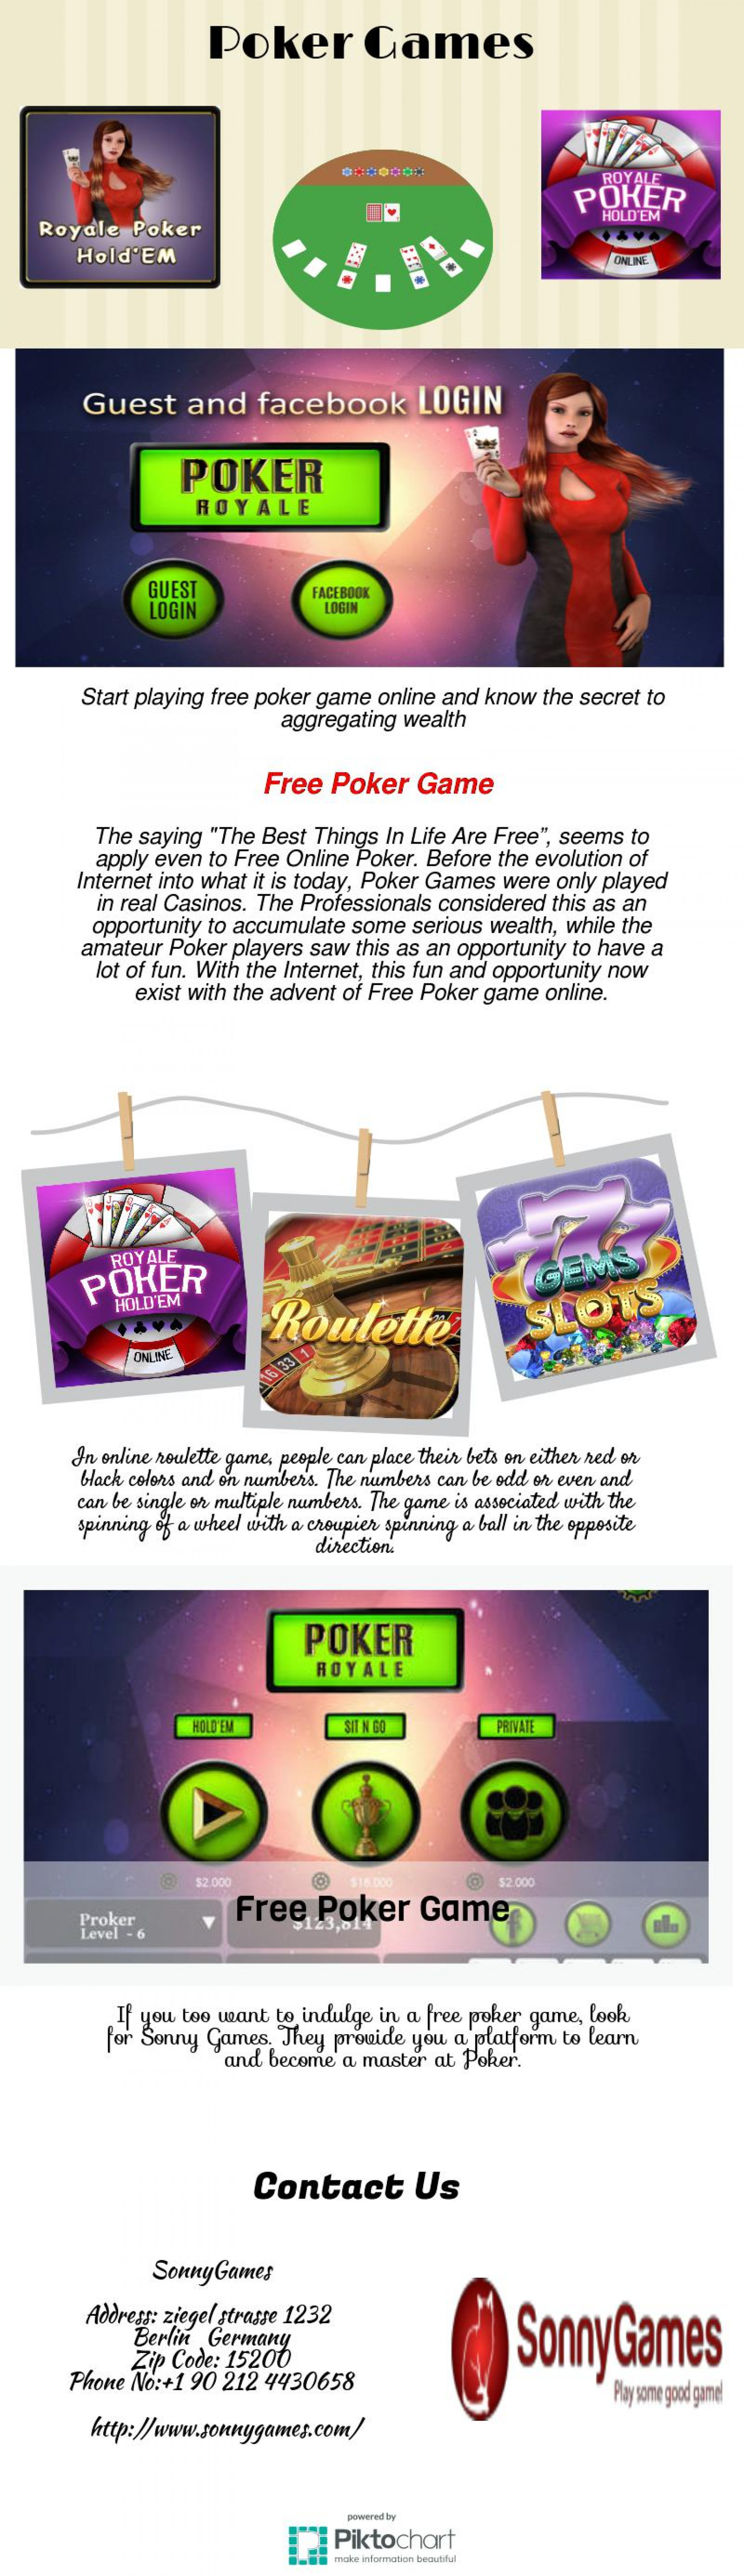 free poker game Infographic